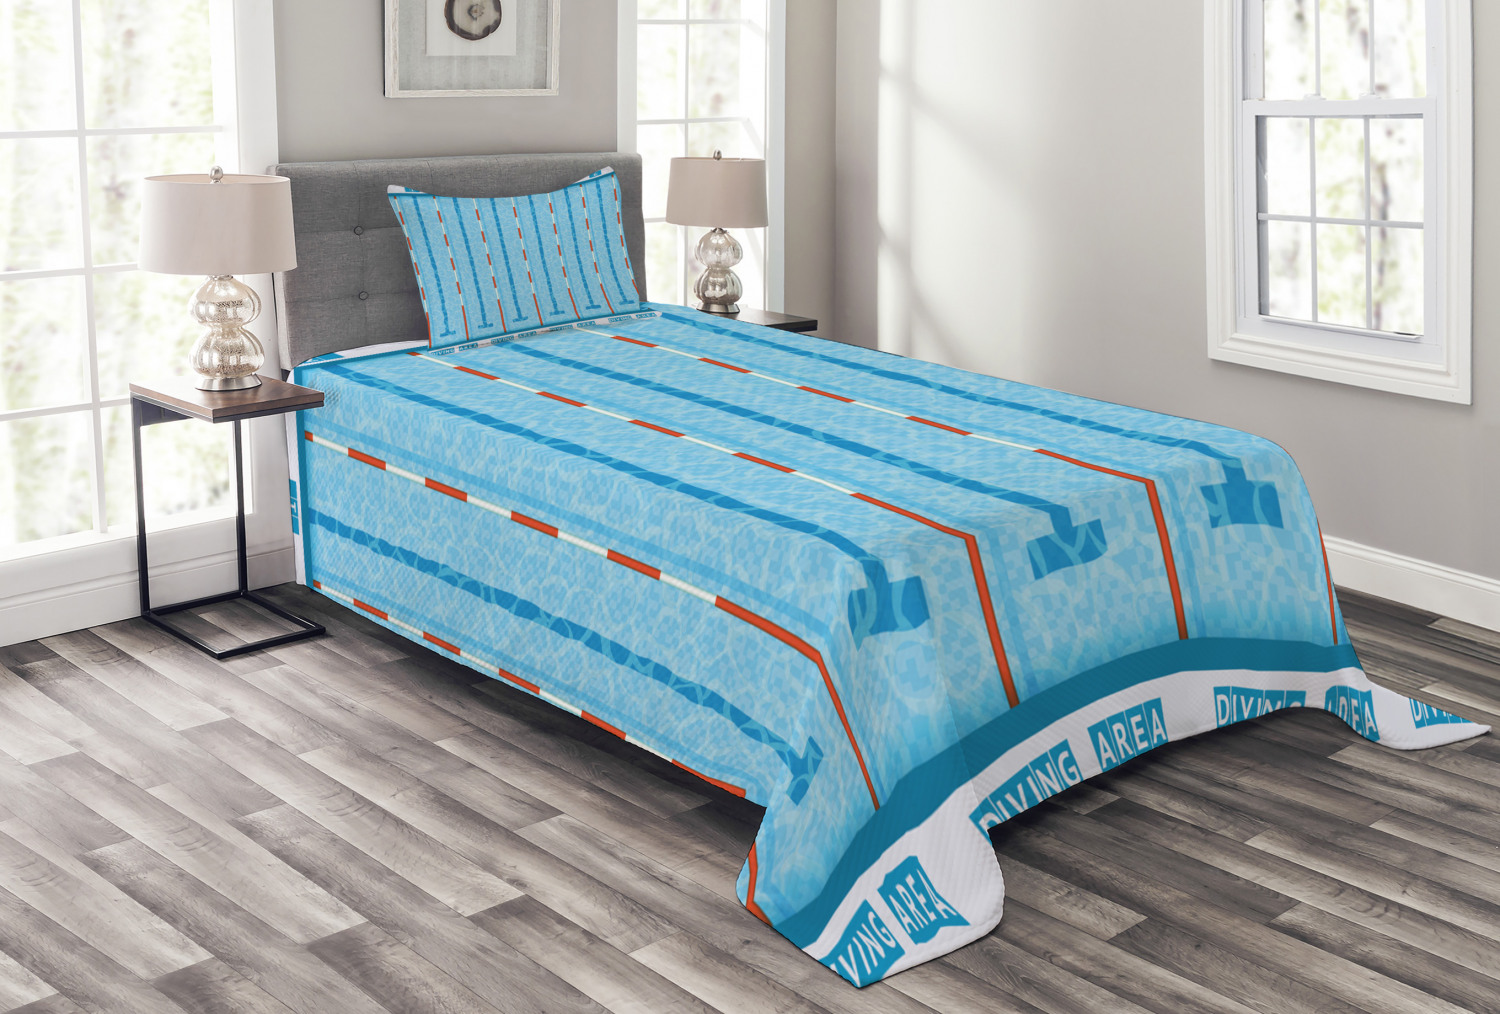 Blue Bedspread Sports Competition Theme Swimming Pool With Lanes Aquatic Pictogram Image Decorative Quilted 2 Piece Coverlet Set With Pillow Sham Twin Size Aqua Red And White By Ambesonne Walmart Com